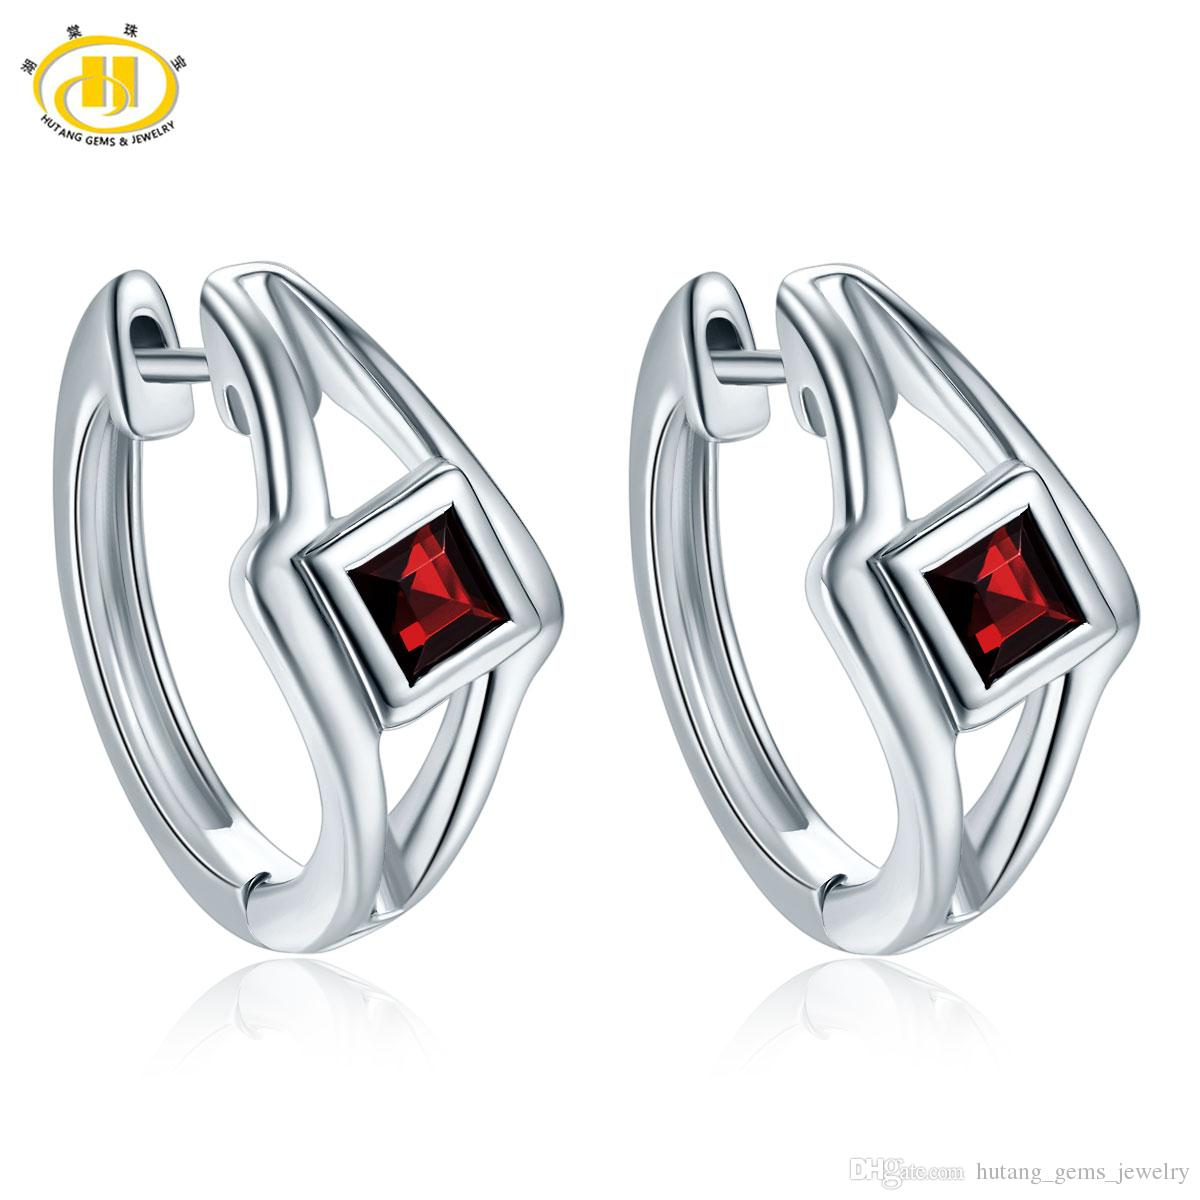 Hutang Stone Jewelry Earrings Natural Gemstone Black Garnet Solid 925 Sterling Silver Fine Fashion Jewelry For Women's Gift NEW